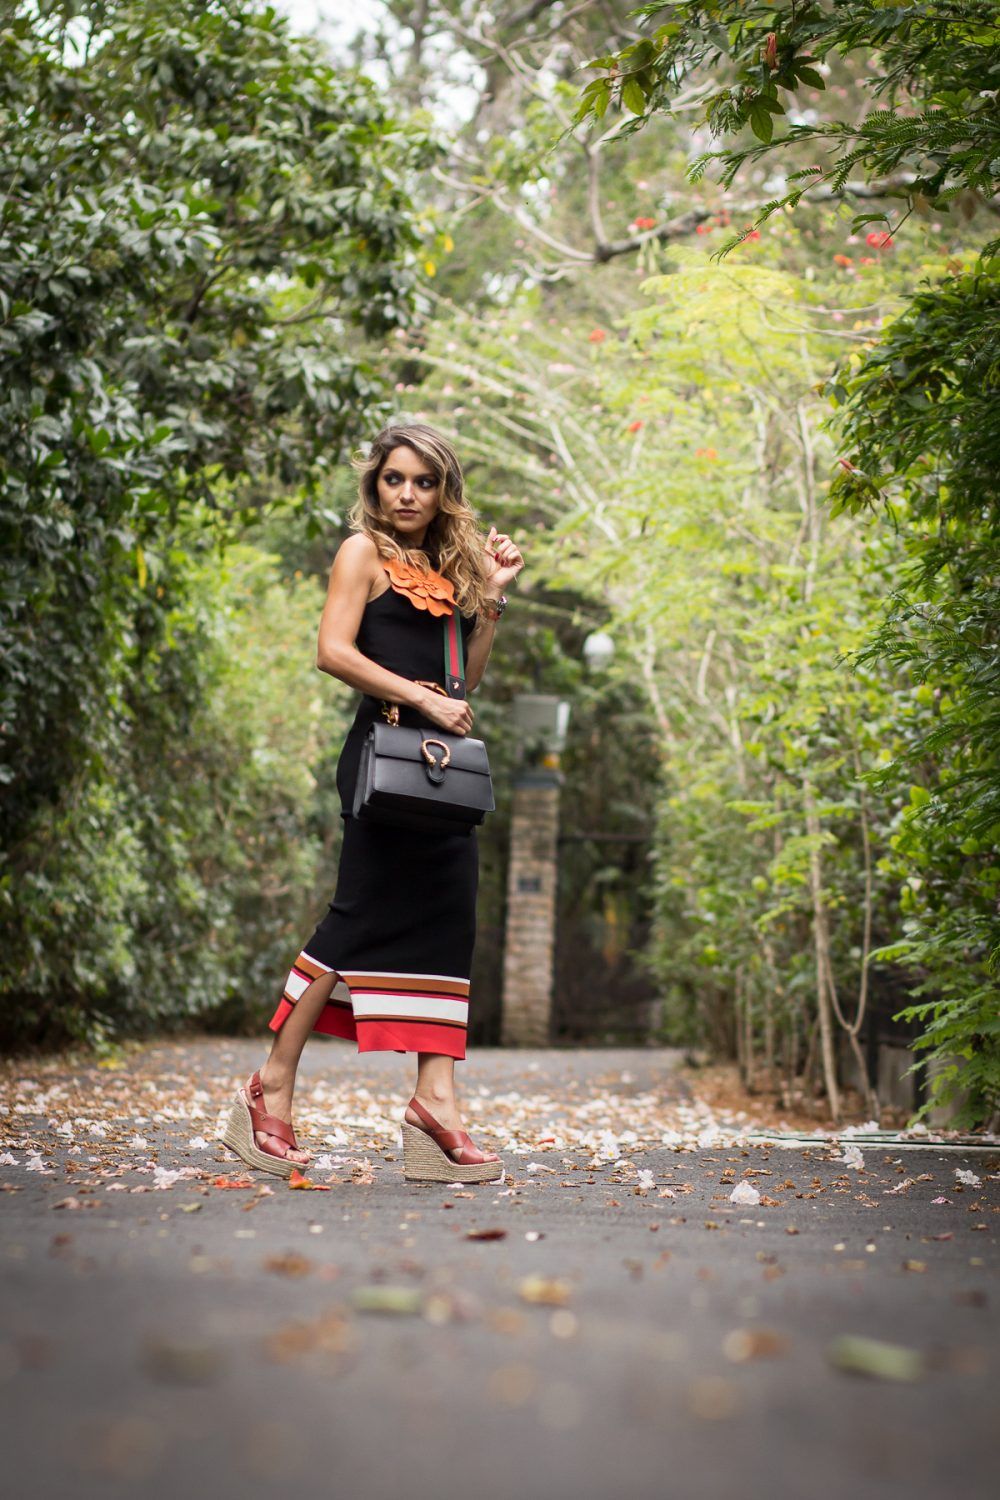 Whitney's Wonderland UK Top Fashion Blogger wears dionysus Gucci bag and Massimo Dutti striped ribbed dress